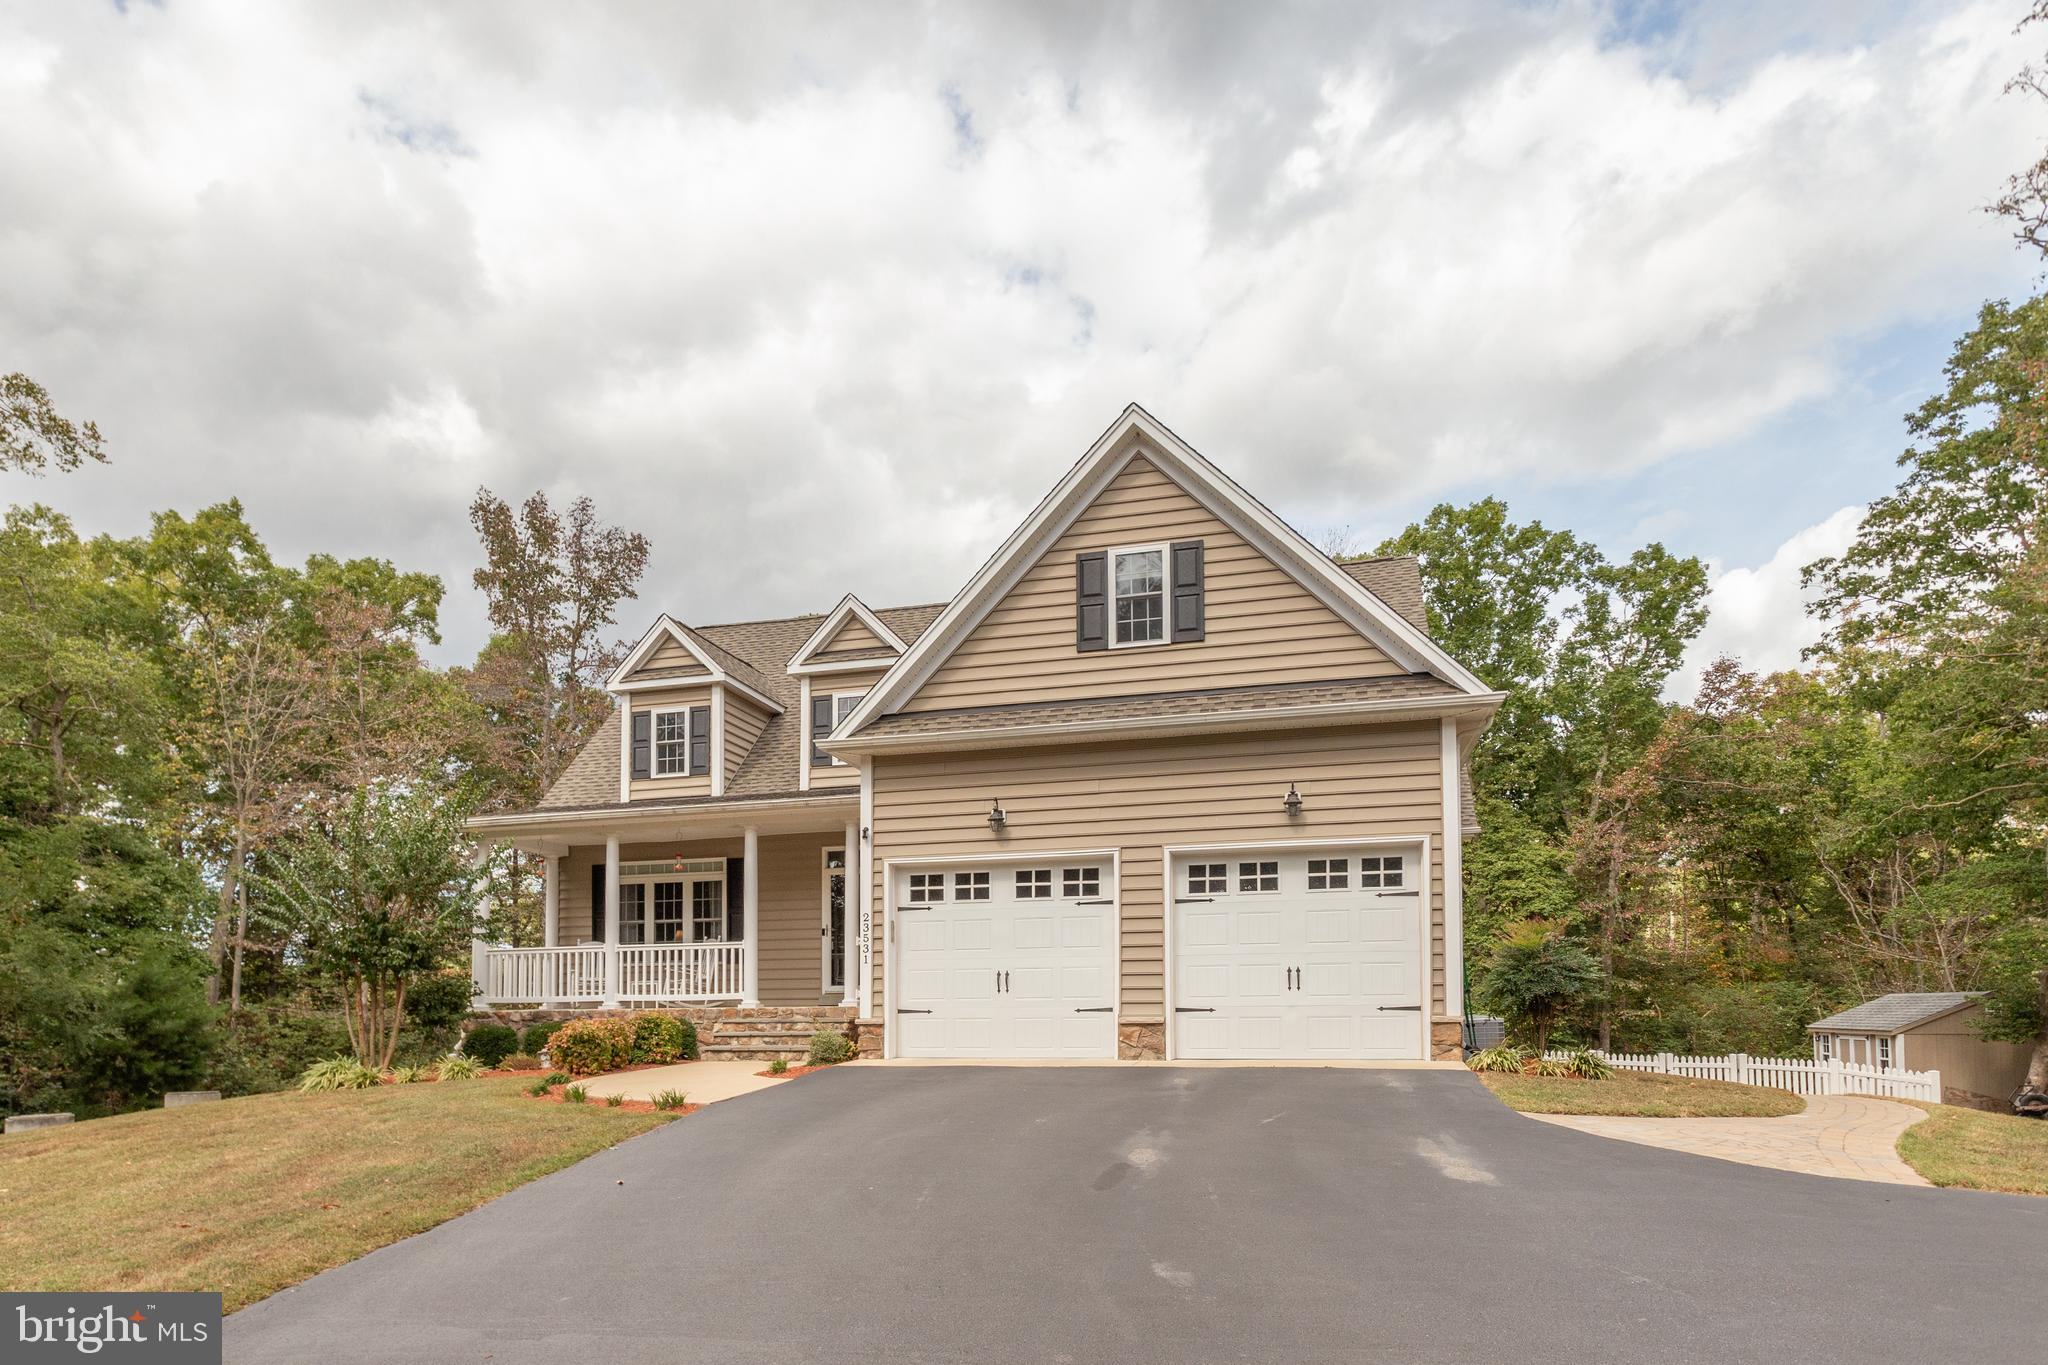 23531 MYRTLE POINT ROAD, CALIFORNIA, MD 20619